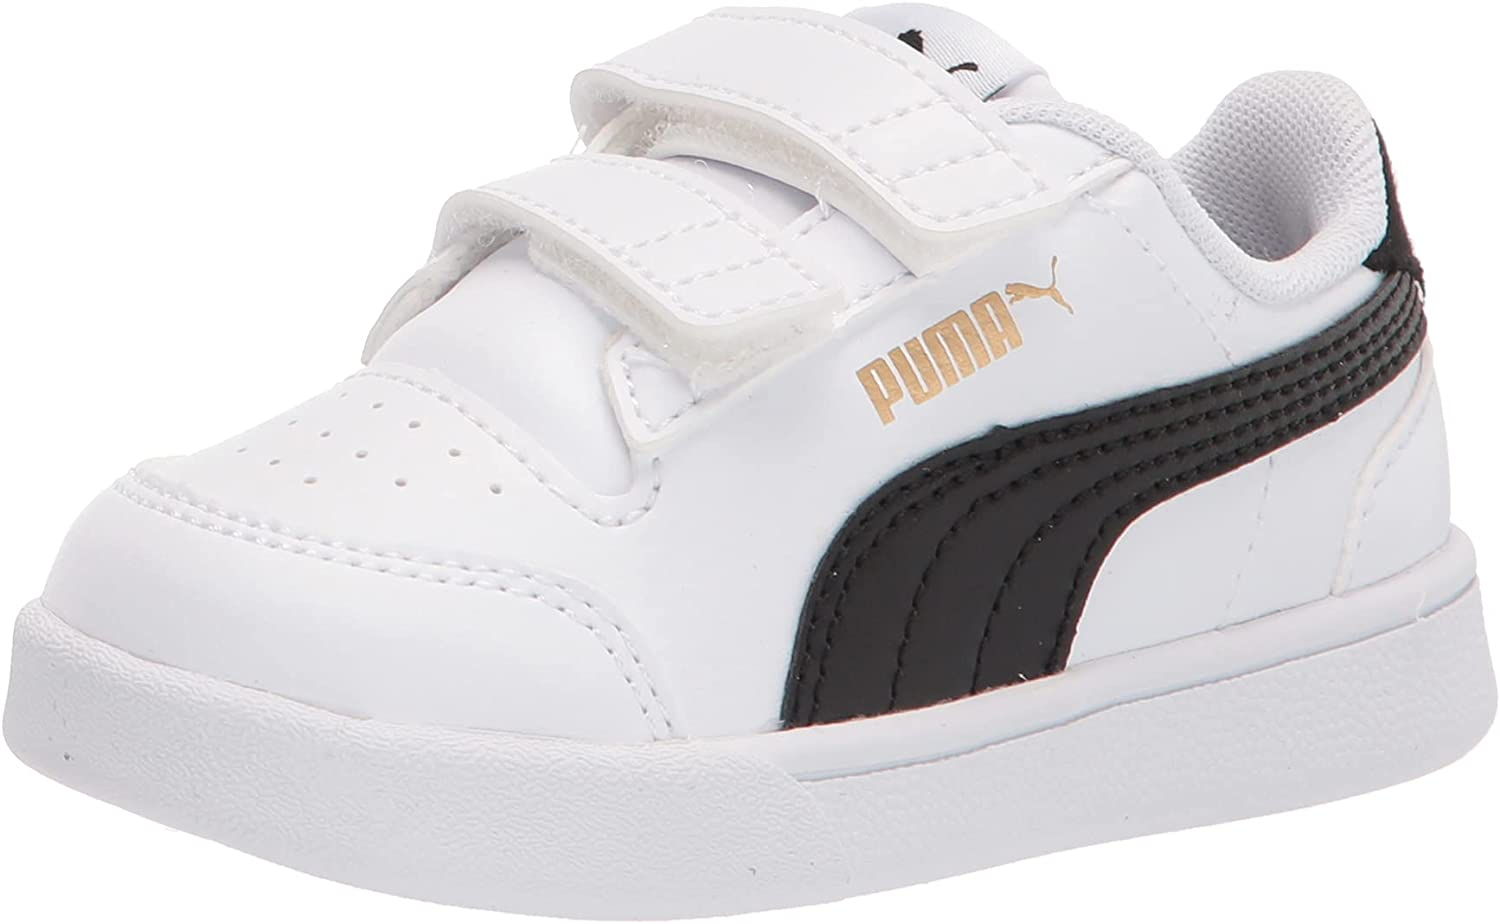 PUMA Unisex-Child Shuffle Max 64% Challenge the lowest price of Japan ☆ OFF Hook and Loop Sneaker